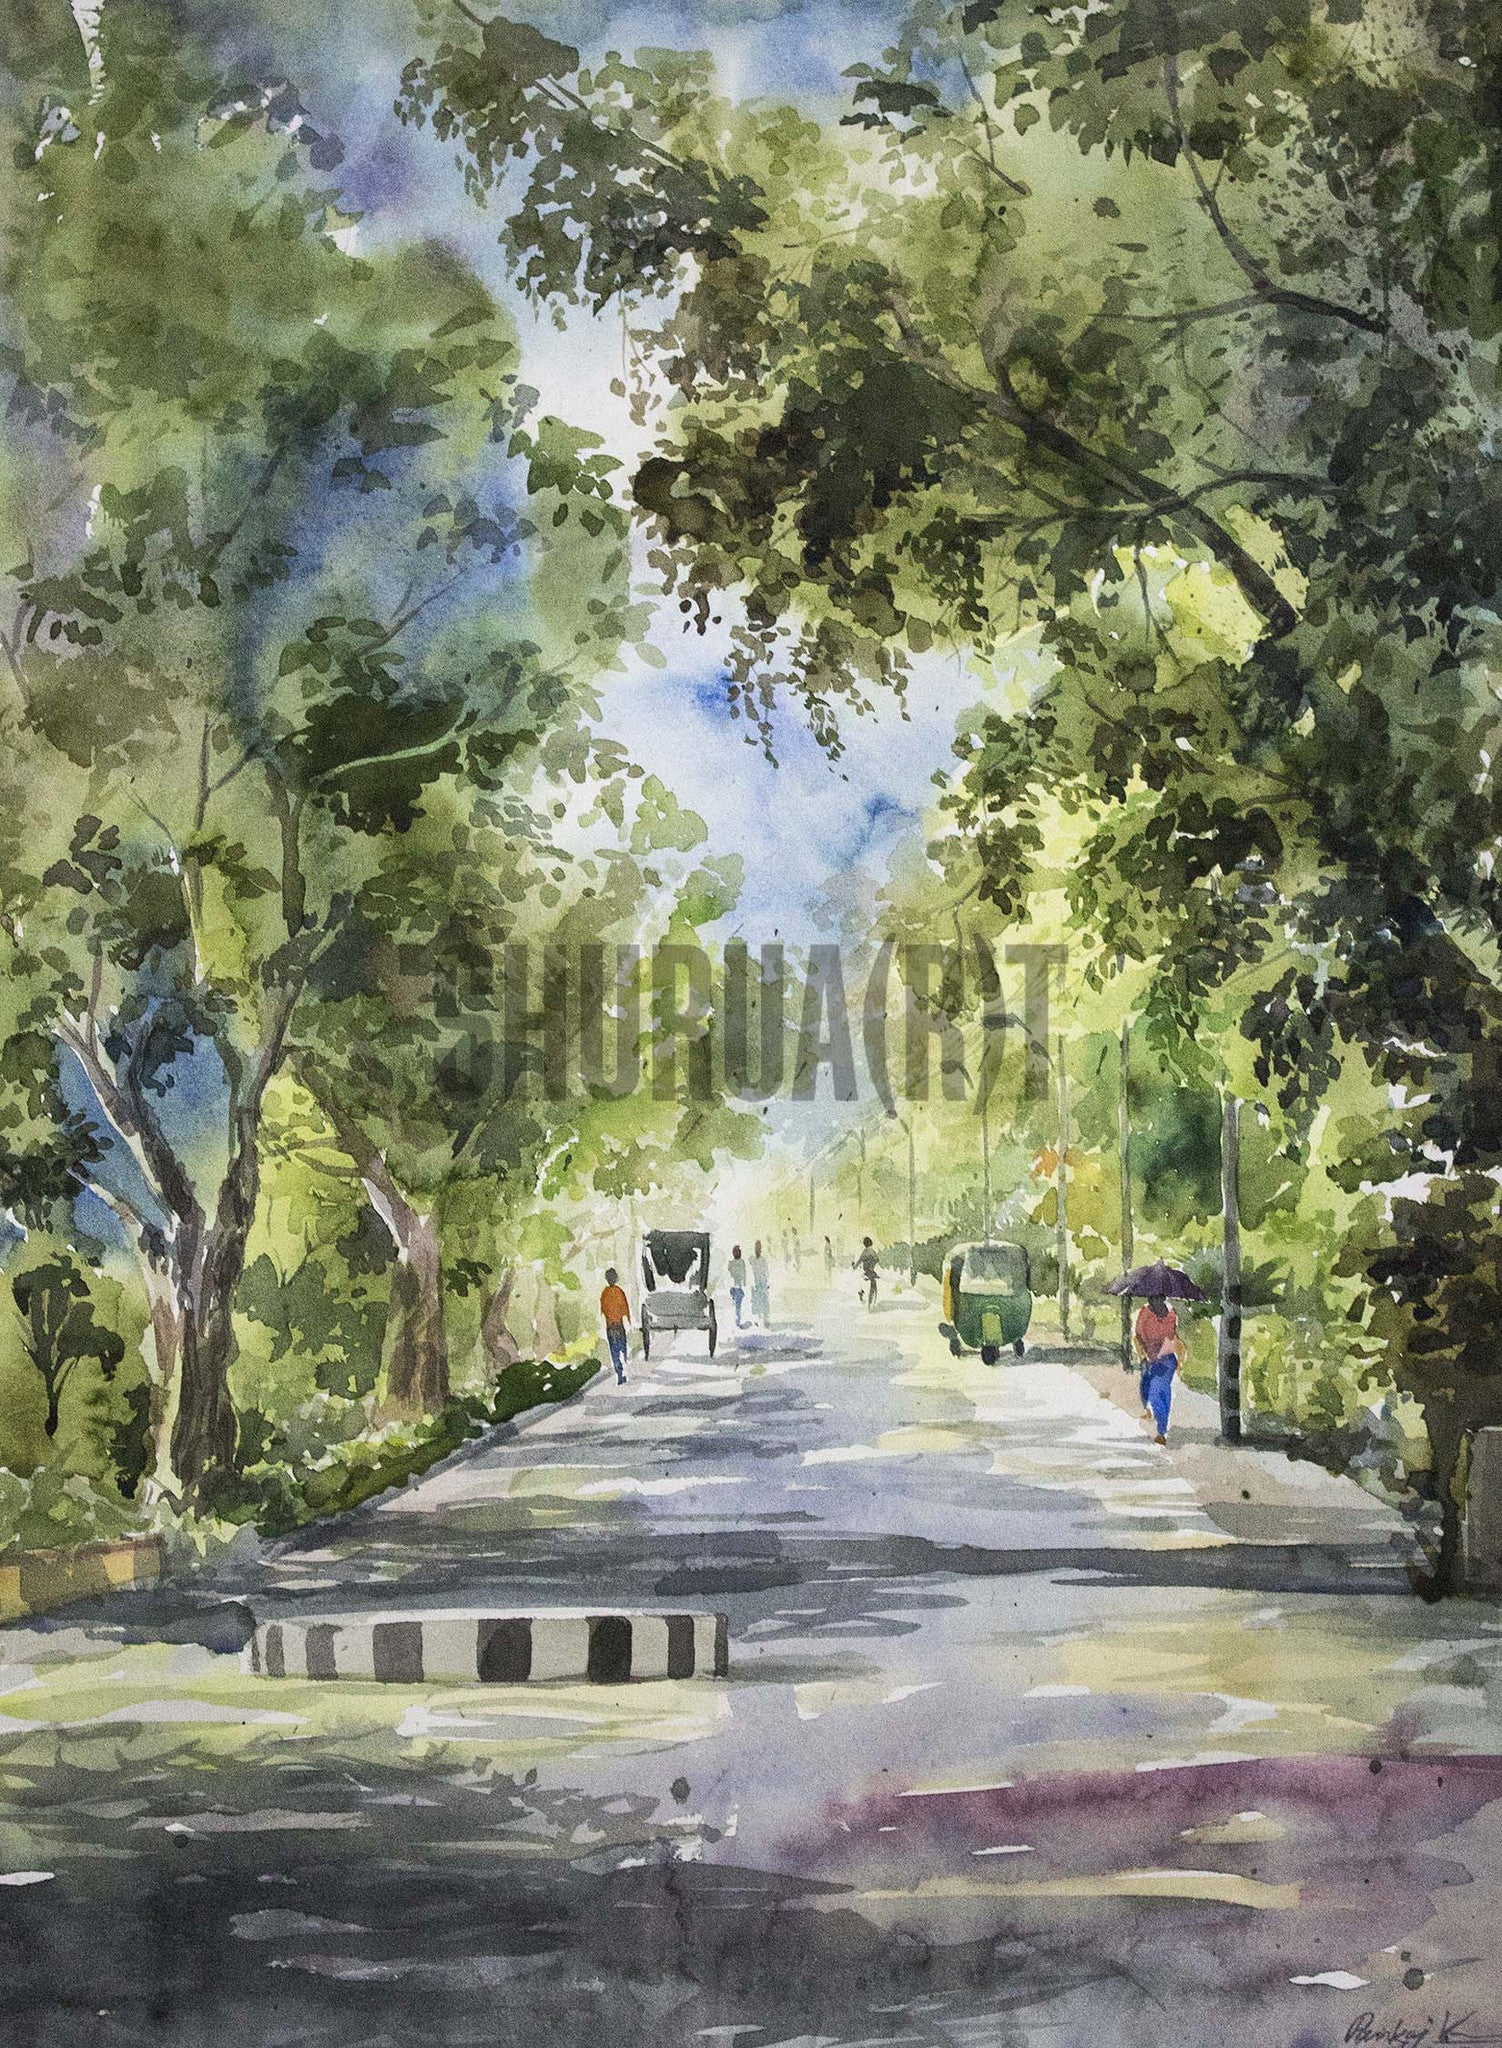 Landscape painting of a street in Banaras Hindu University